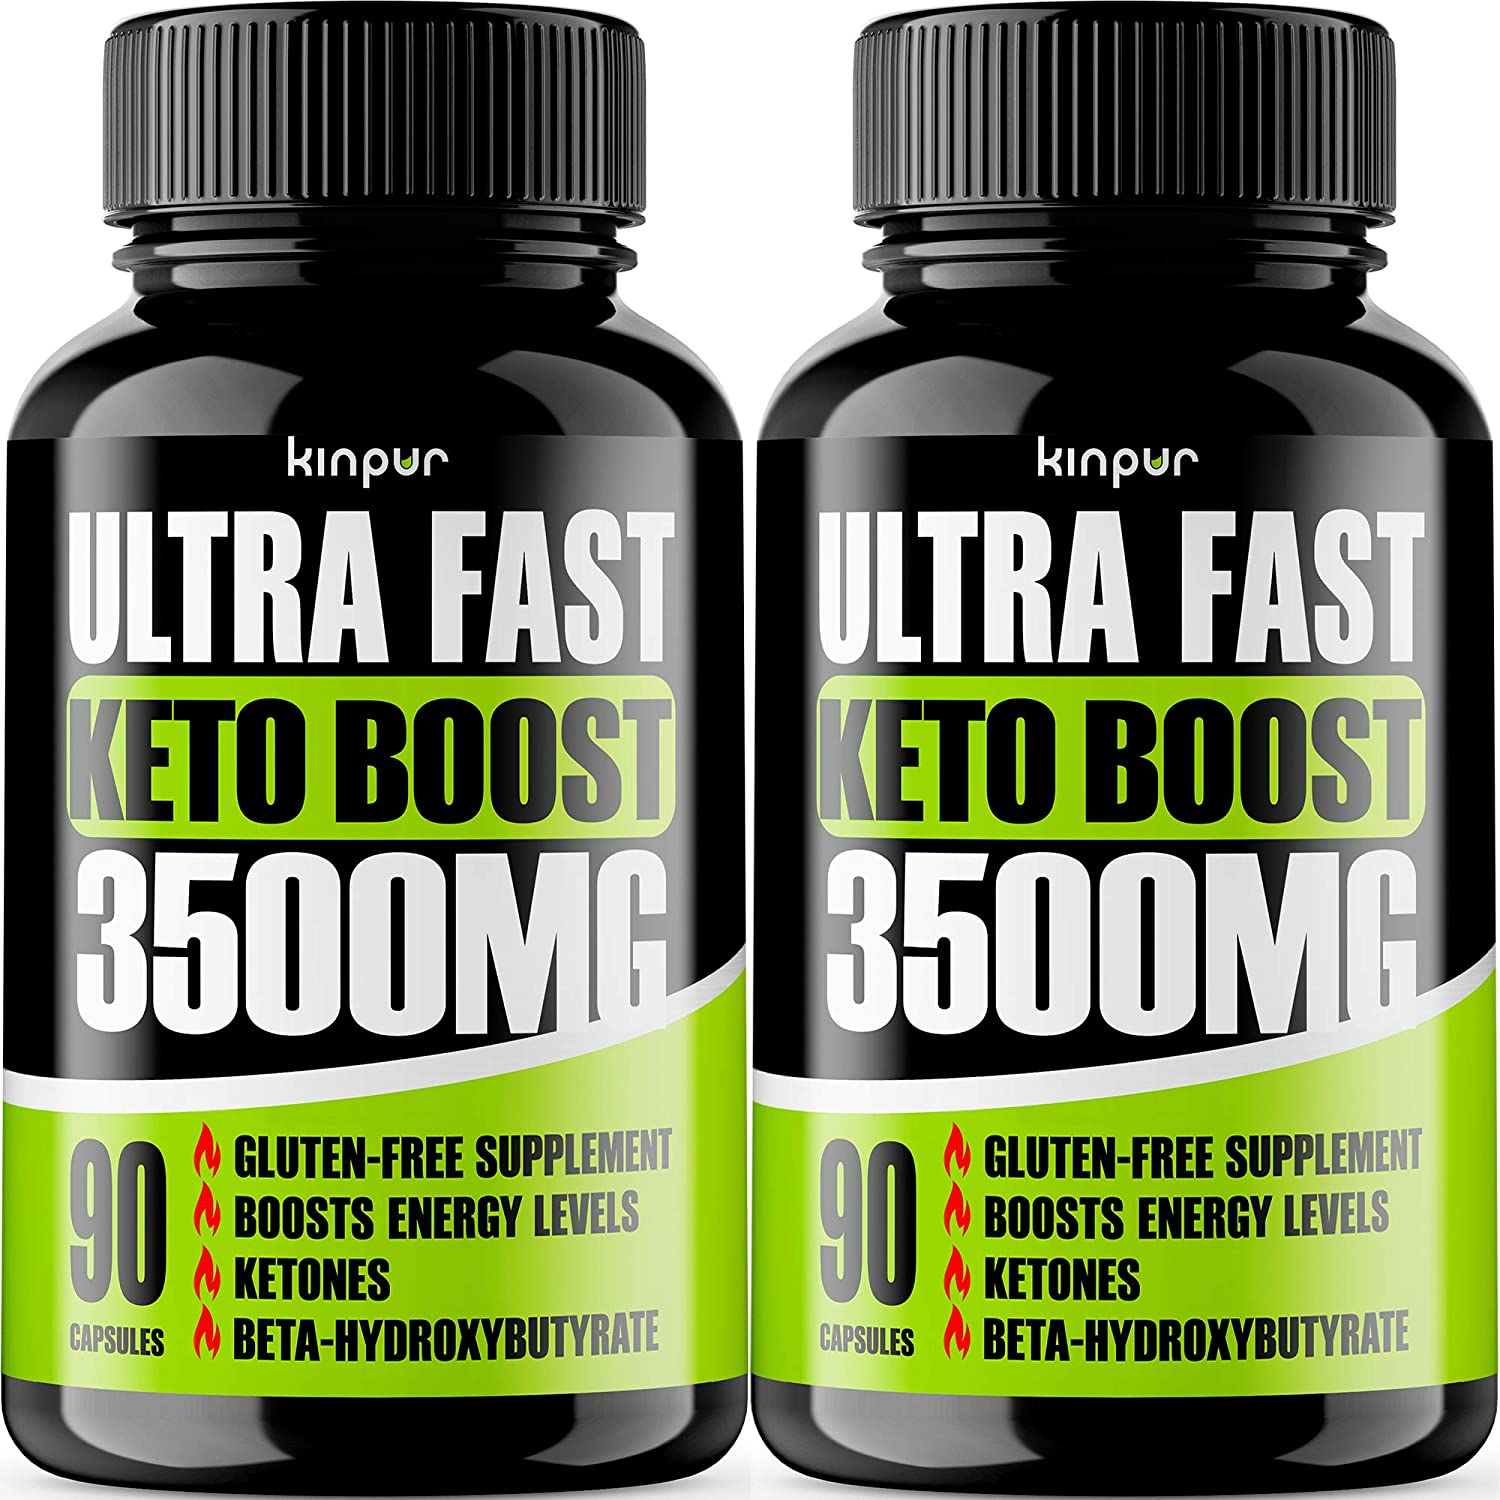 Premium Keto Pills 2-Pack - Effective Keto Fast Diet Pills for Improved Focus, Stamina and Energy - Perfect for Women Belly Fat & Fit Body - 180 Keto Diet Pills